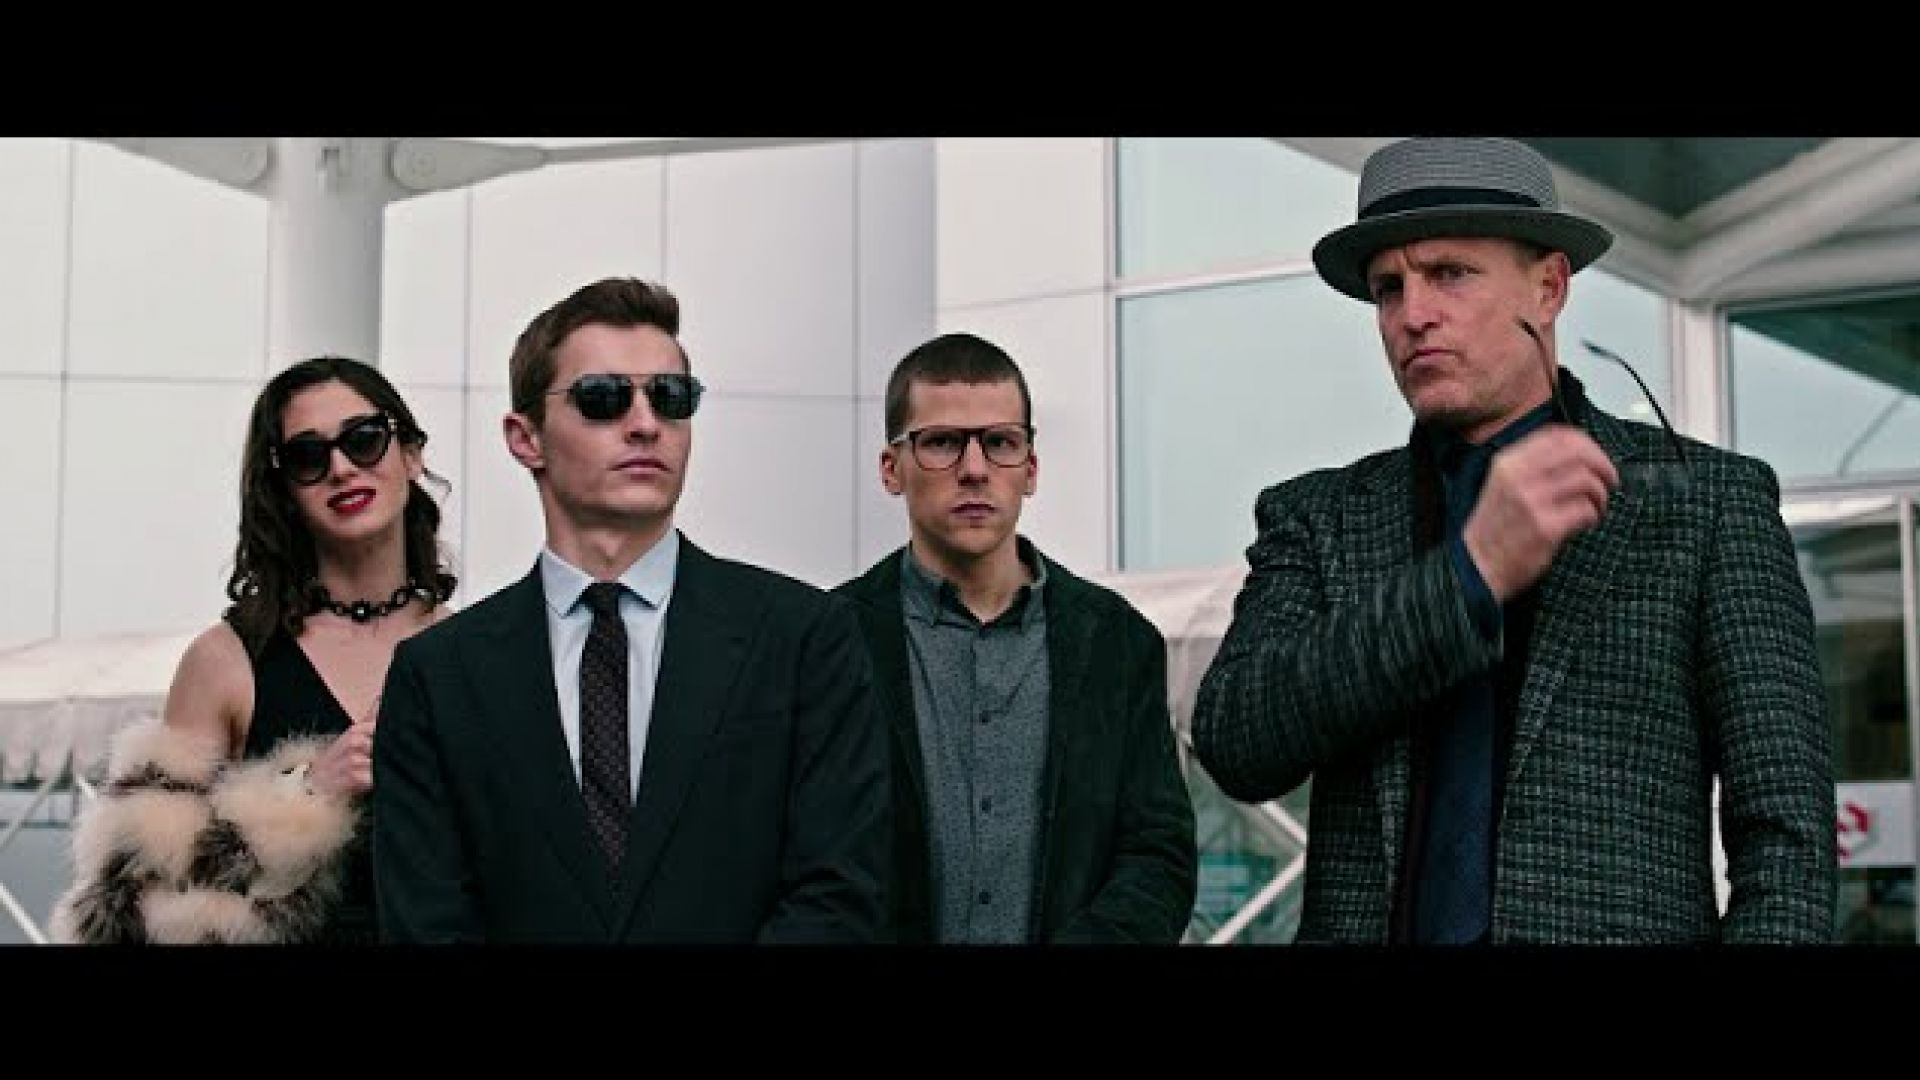 The First Act Was Just the beginning in New 'Now You See Me